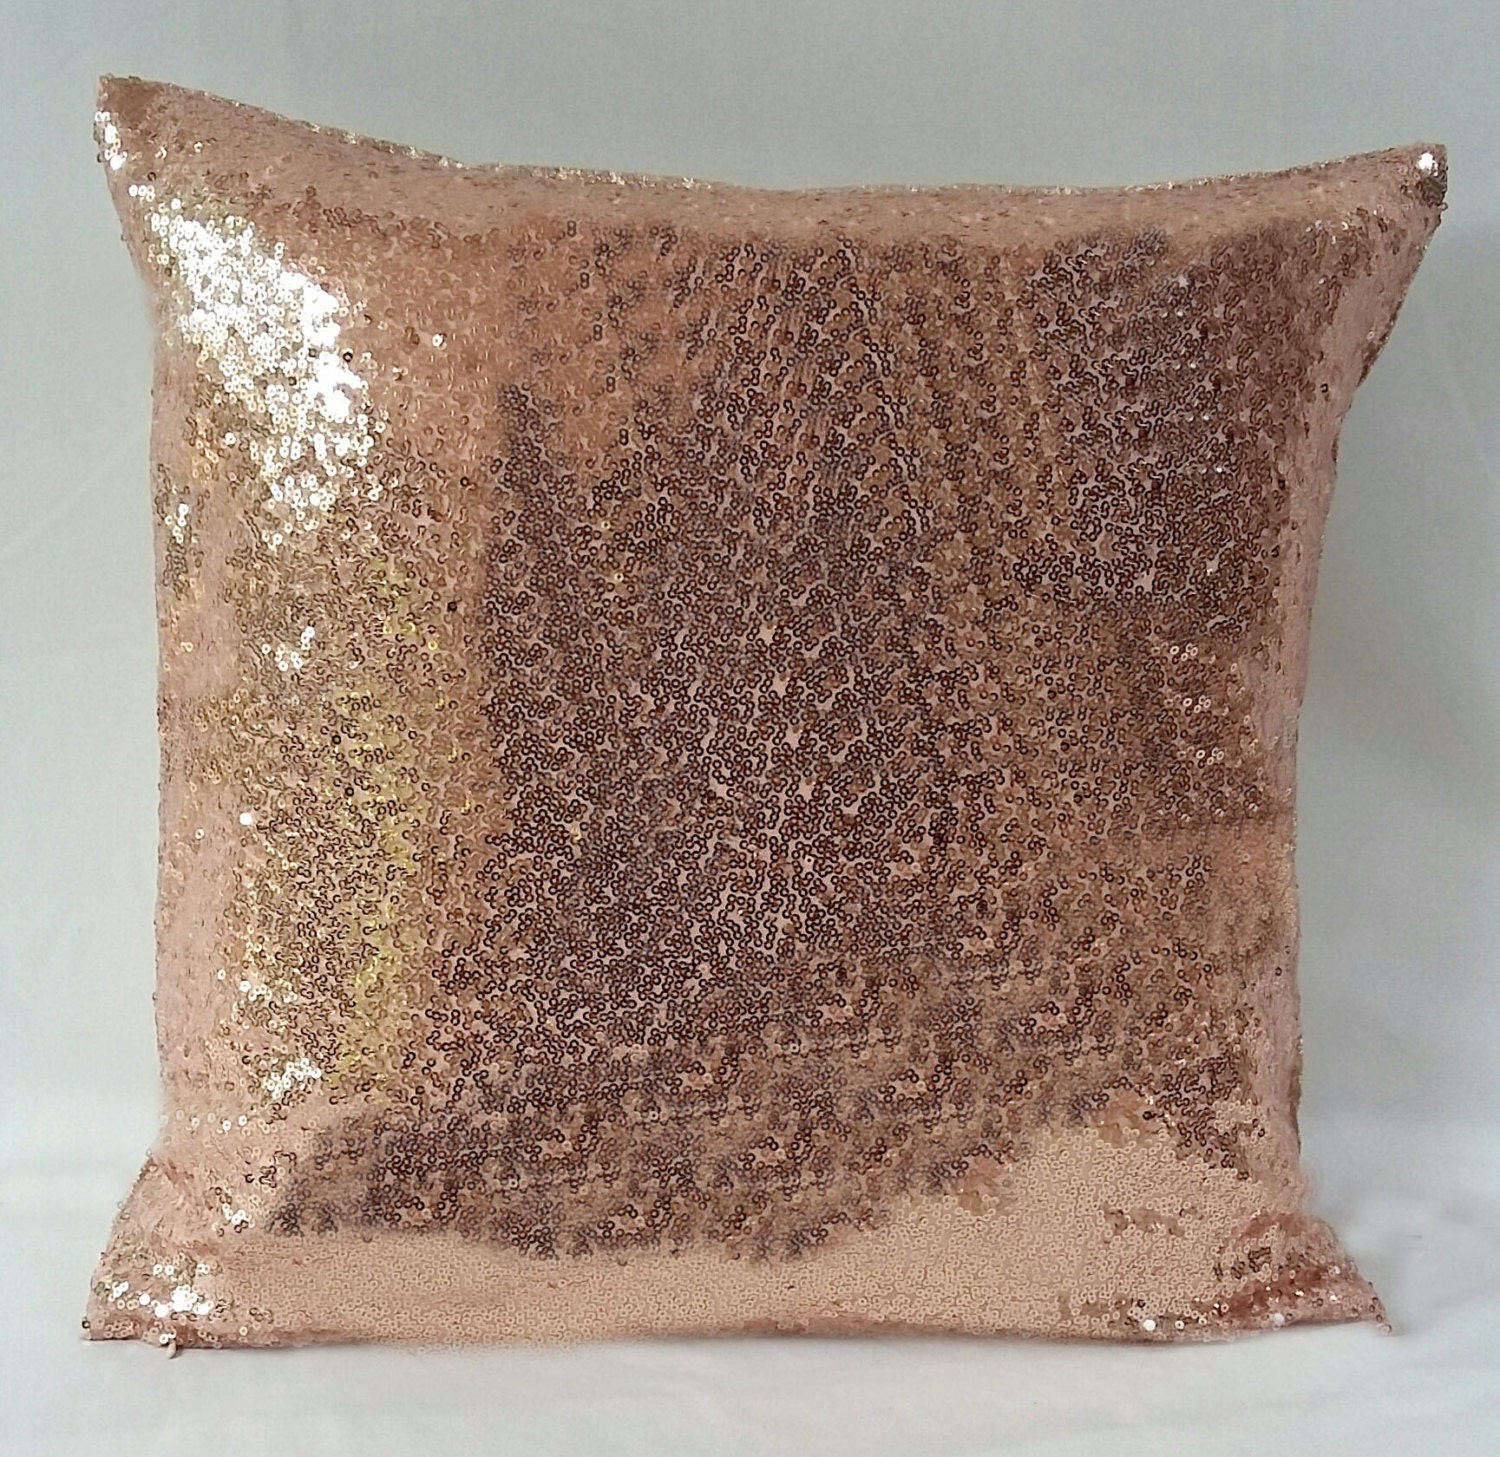 rose gold sequin pillow rose gold pillow cover metallic. Black Bedroom Furniture Sets. Home Design Ideas